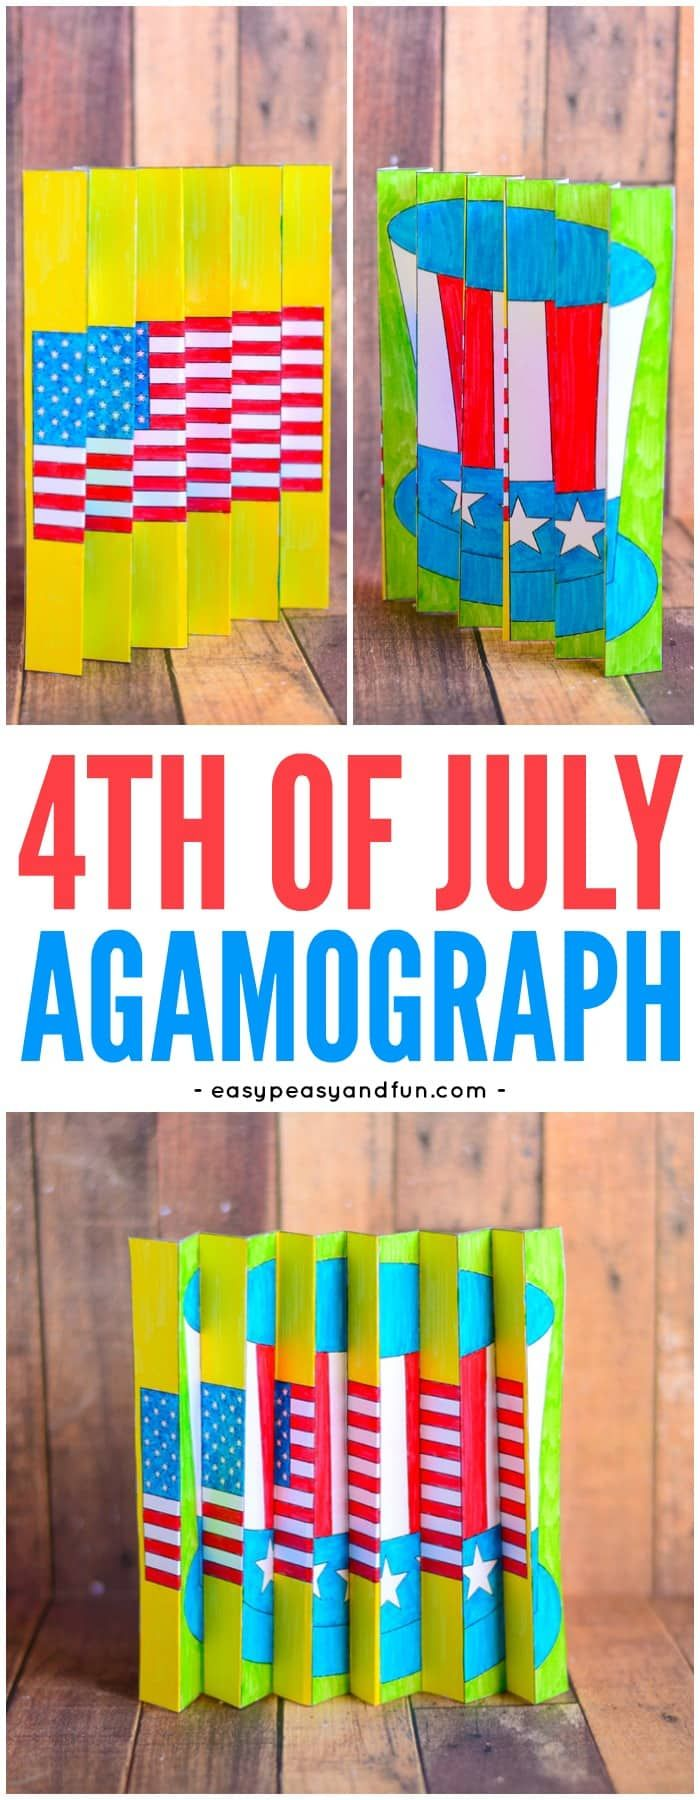 4th of July Agamograph! A colorful and old fashioned craft that is perfect of older kids at a Fourth of July party, summer camp or just because! Turn the picture- see a new picture!